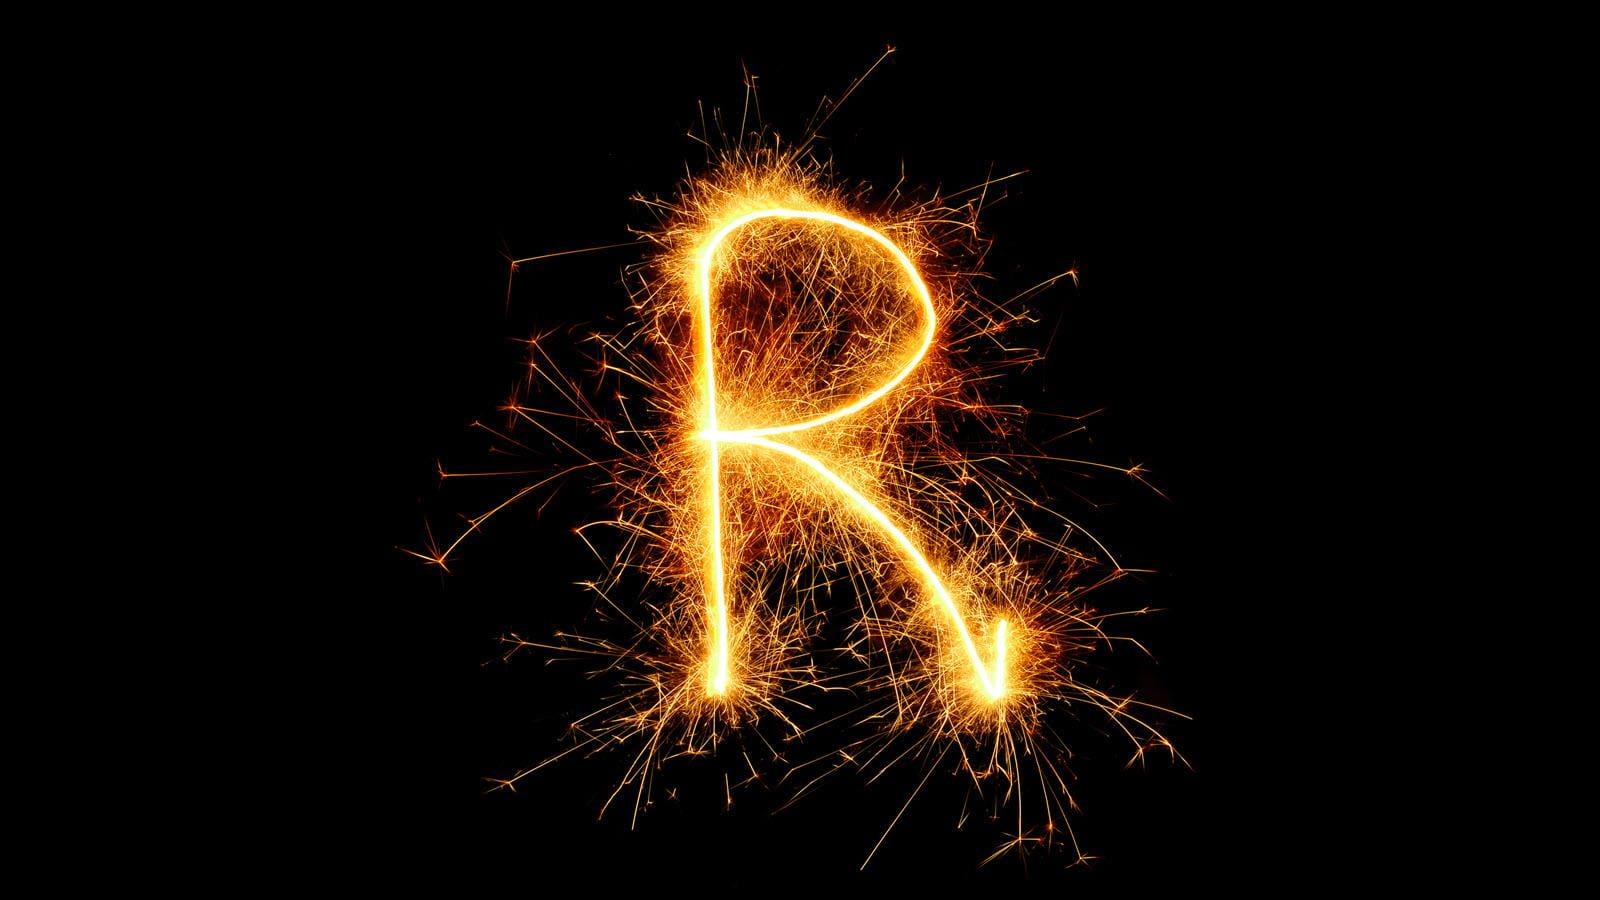 The letter R in sparklers